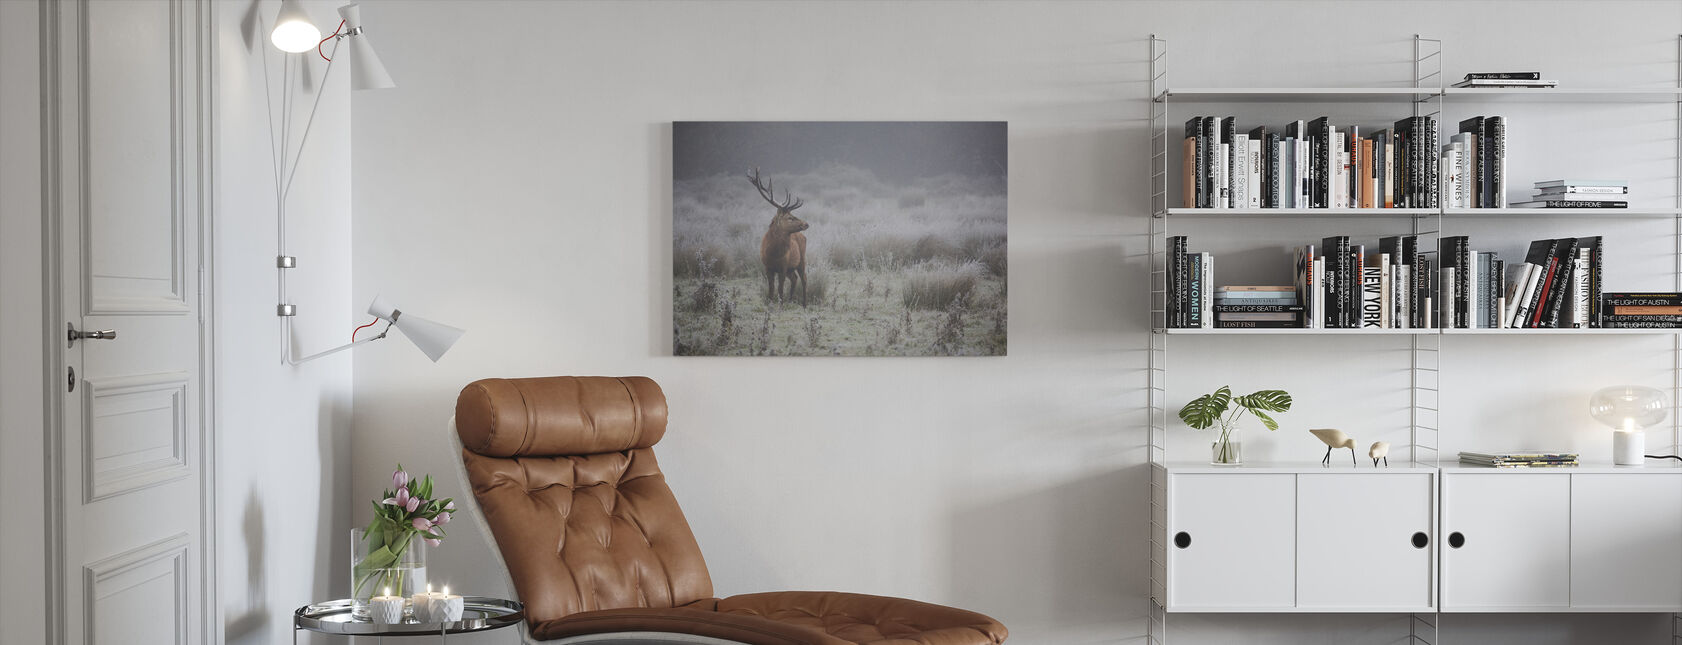 Prideful Deer - Canvas print - Living Room